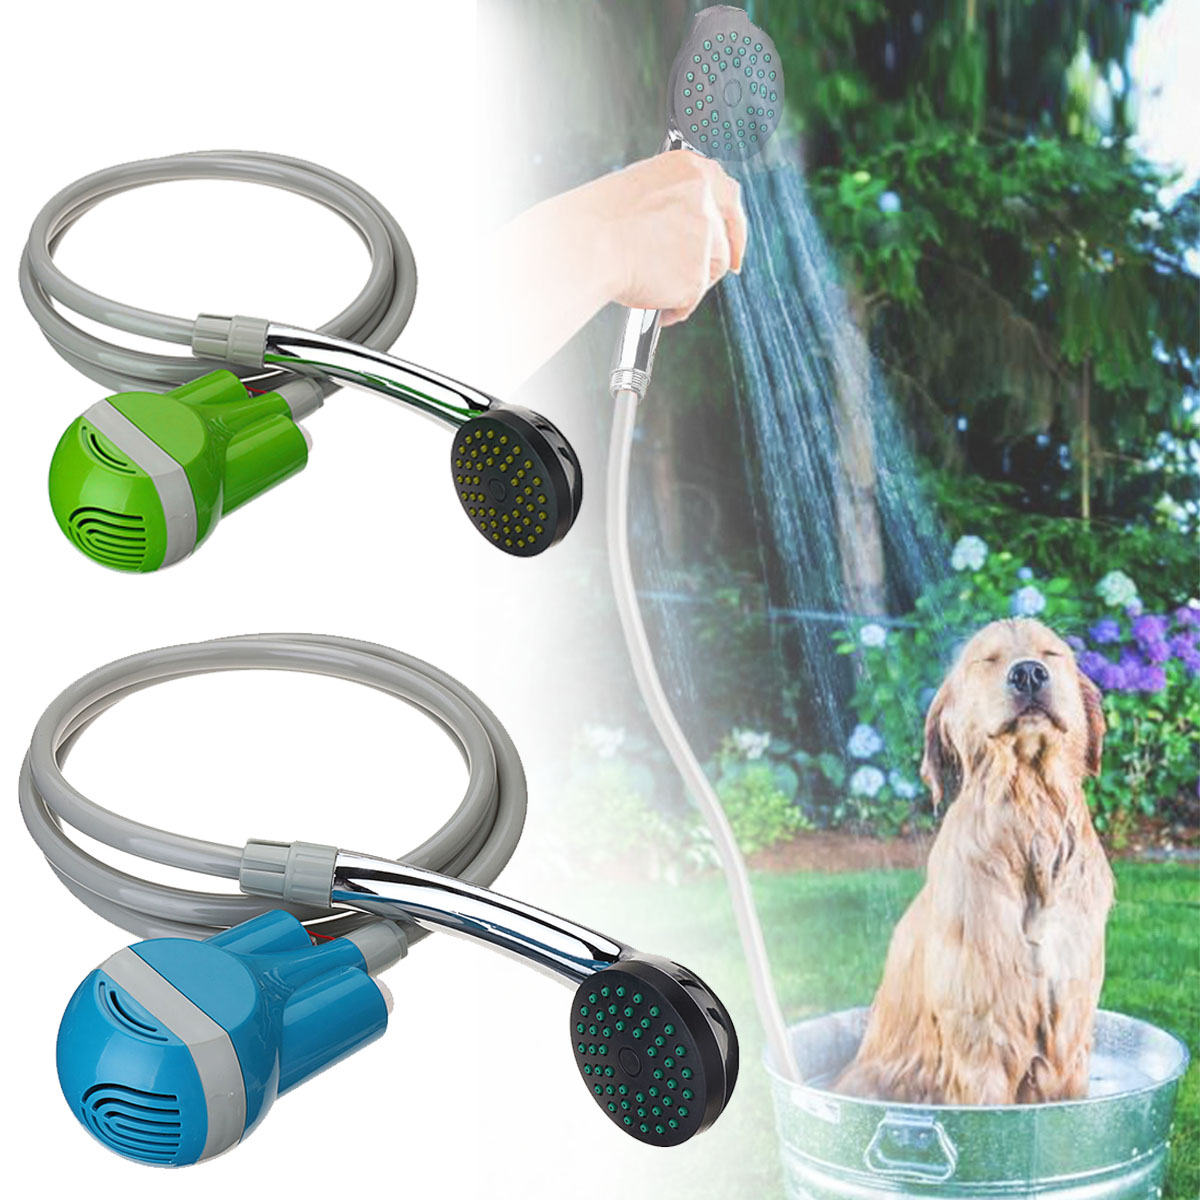 Image result for rechargeable camping shower